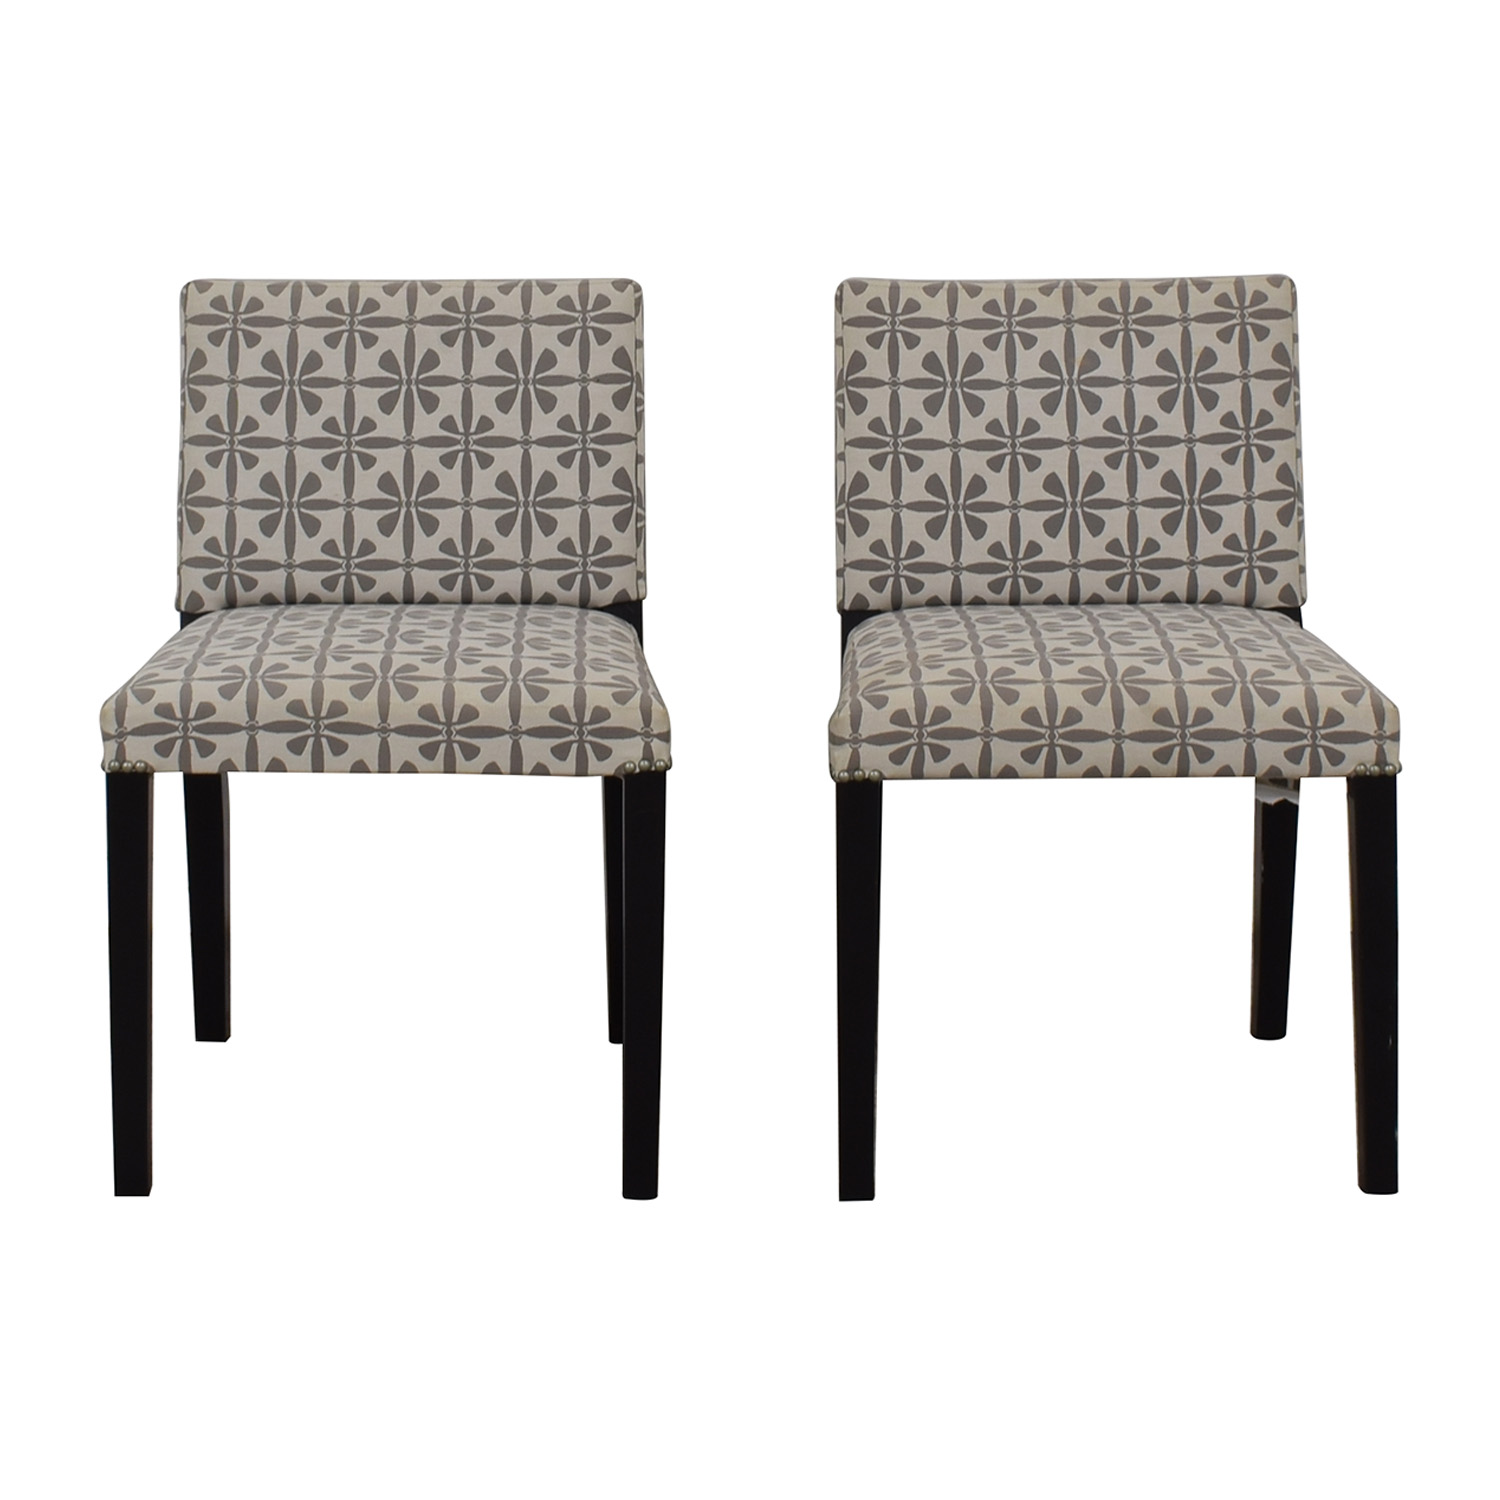 Macy's Macy's Patterned Fabric Dining Chairs coupon